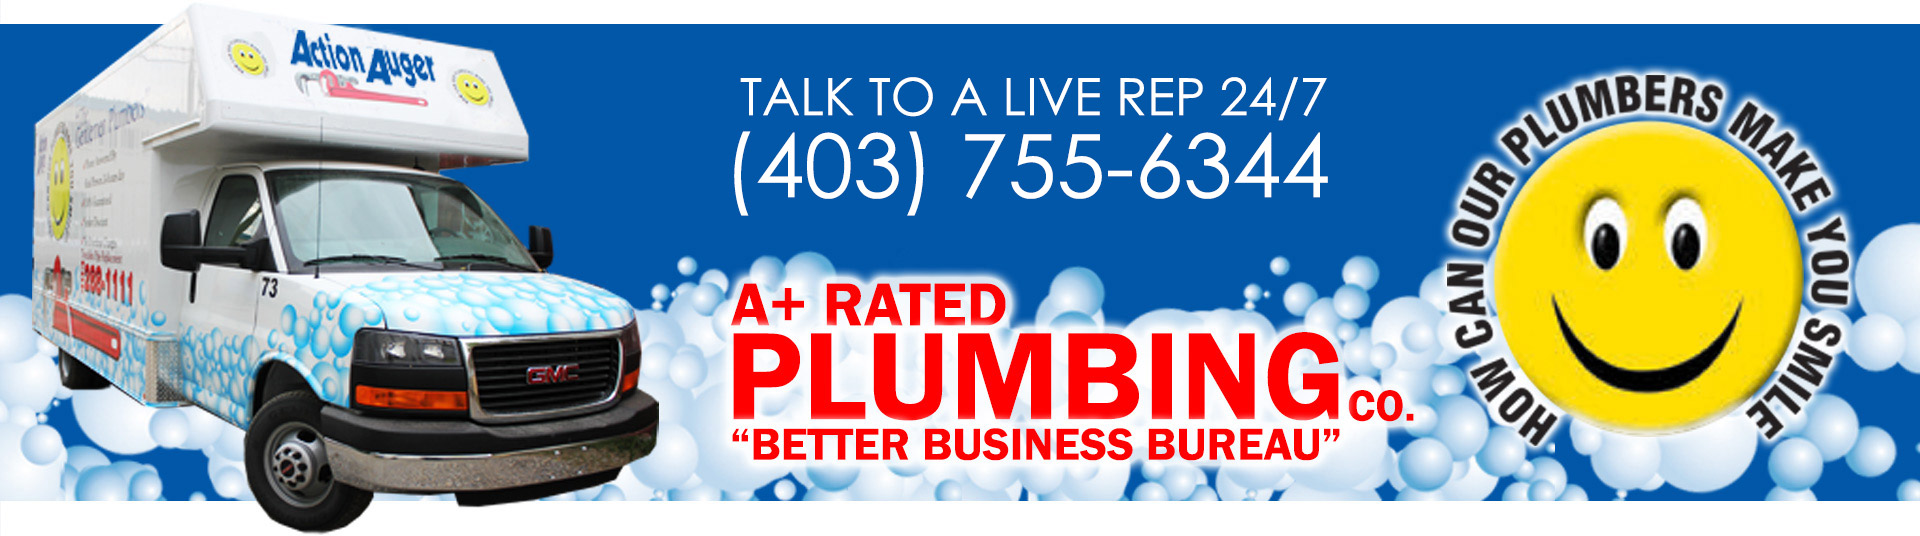 Red Deer Plumbing Truck Bubbles